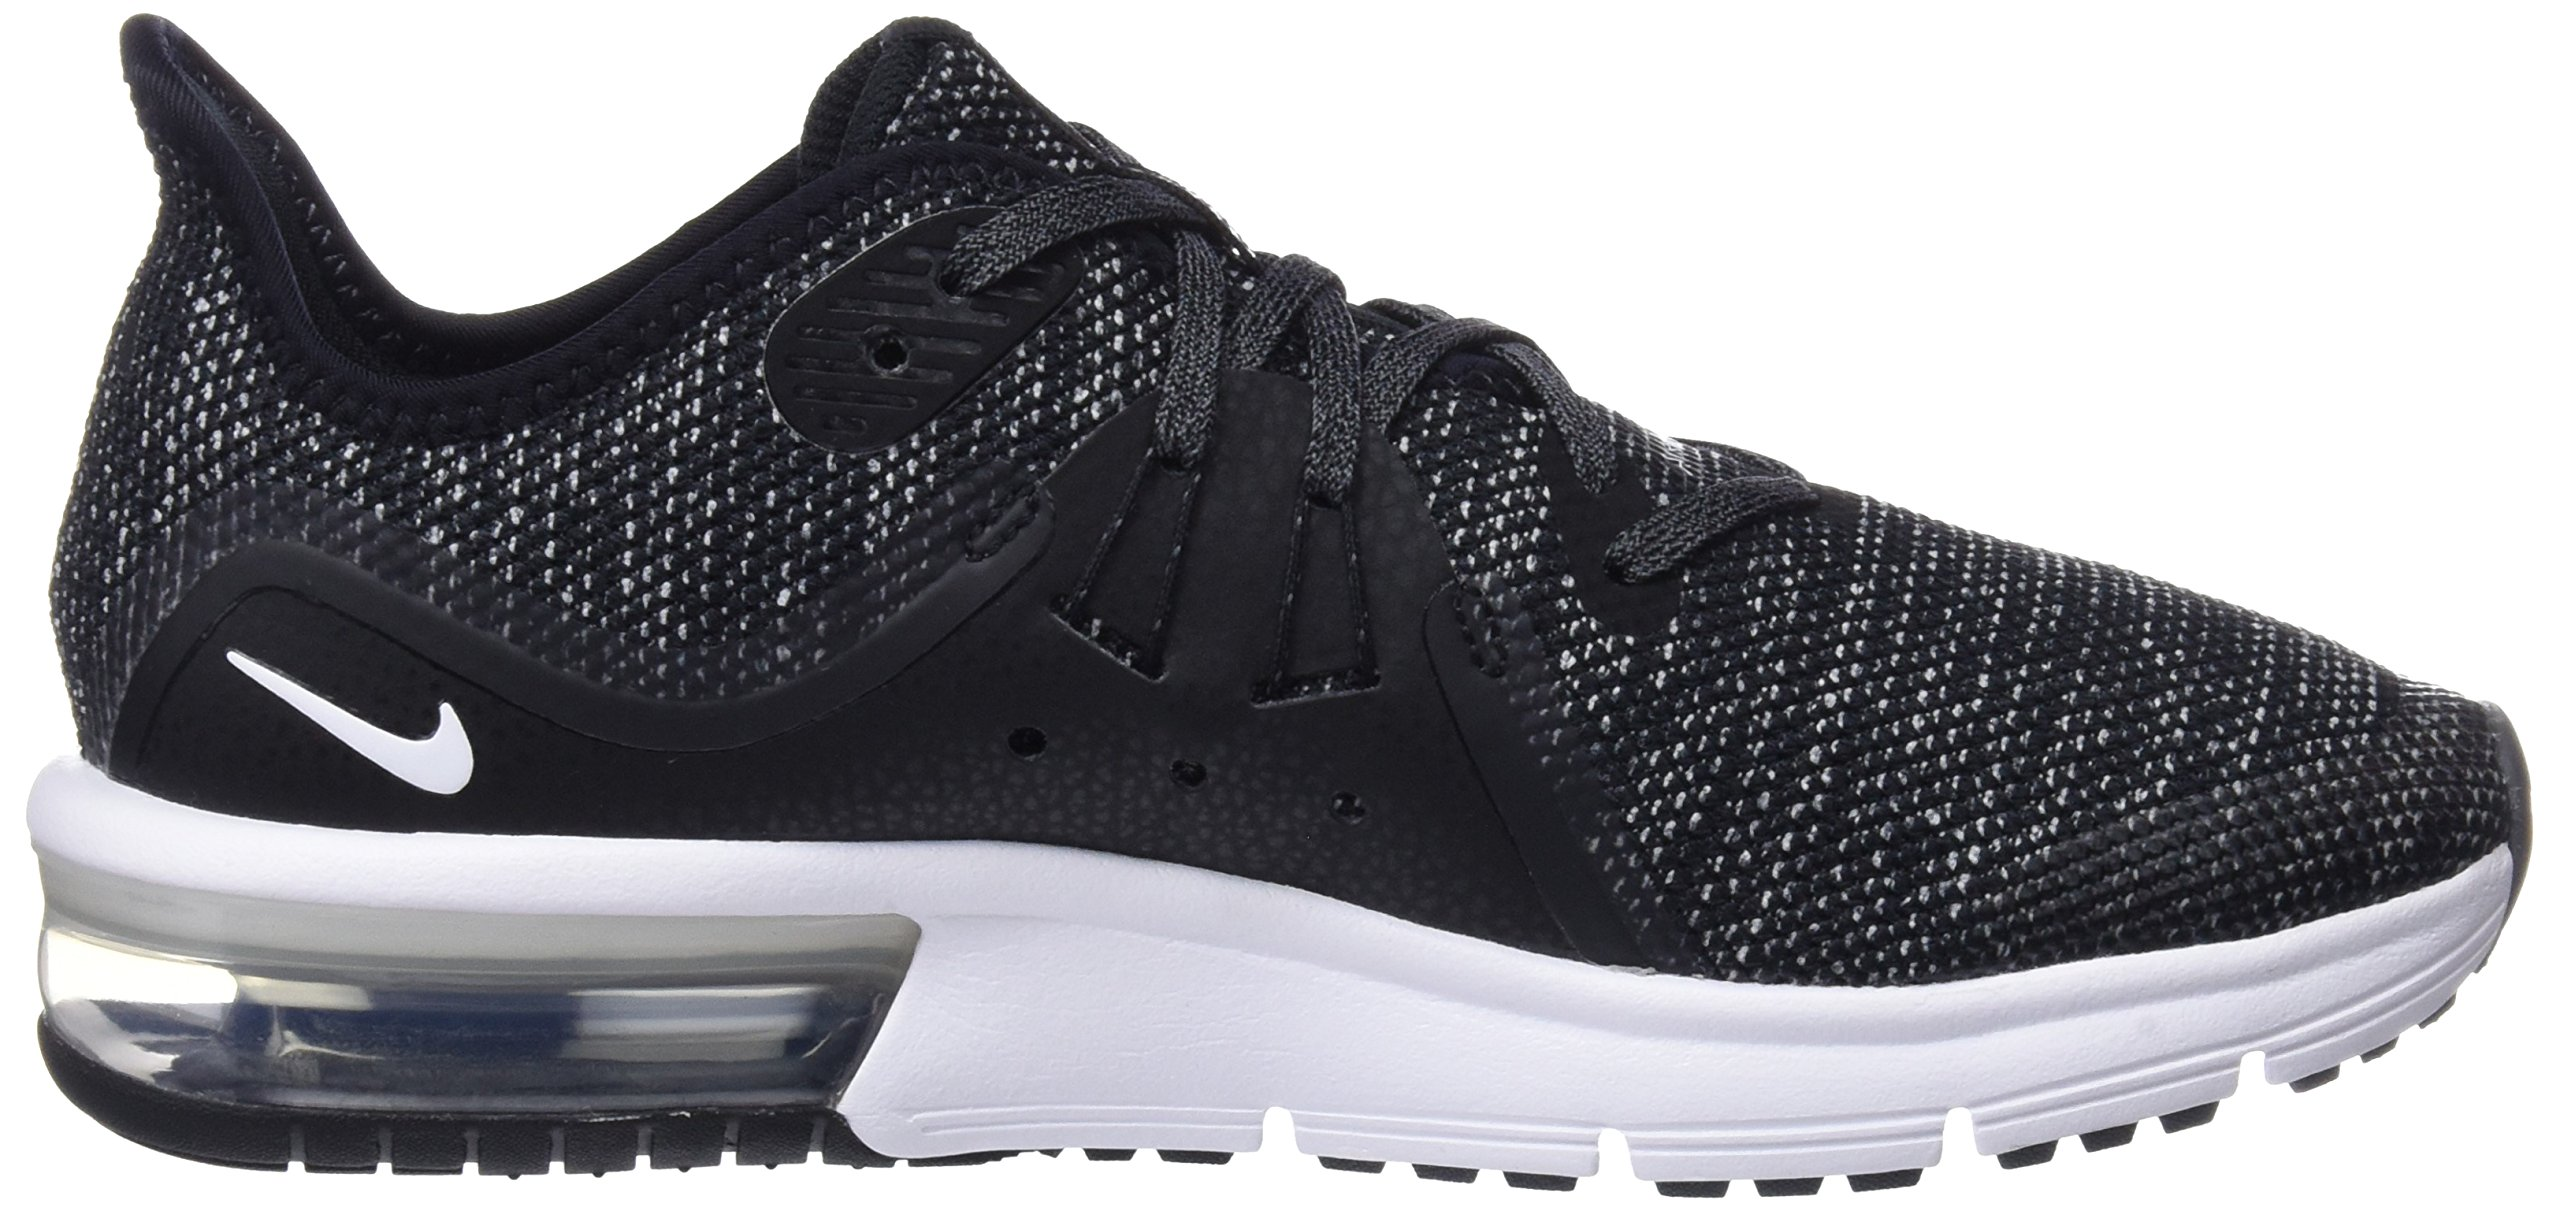 Nike Boy's Air Max Sequent 3 Running Shoe Black/White/Dark Grey Size 3.5 M US by Nike (Image #6)